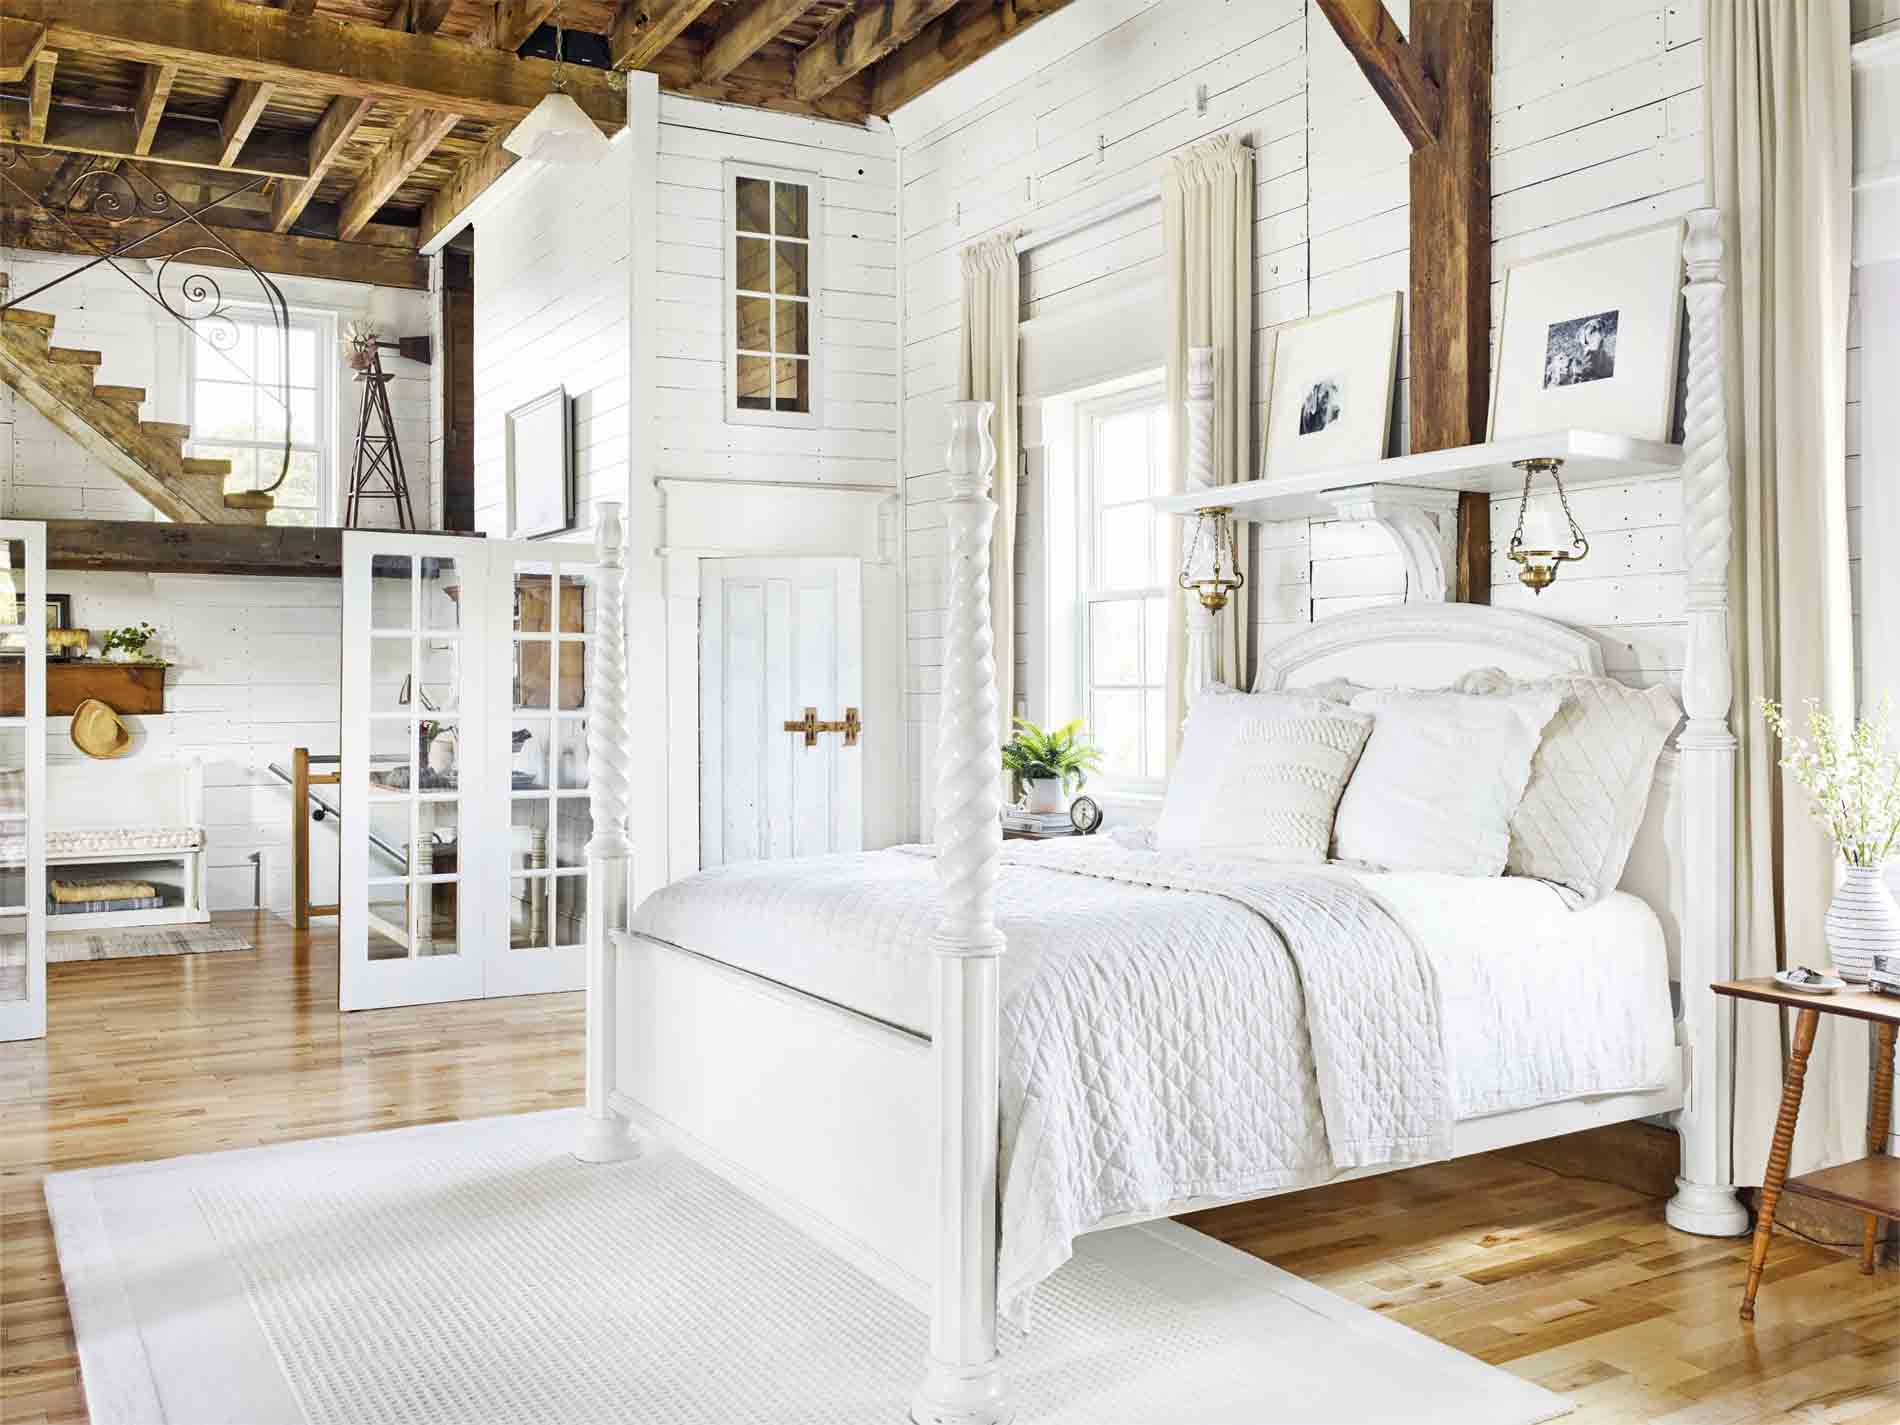 Create A Clean Calm Sleeping Space By Using White Decor In Your Bedroom